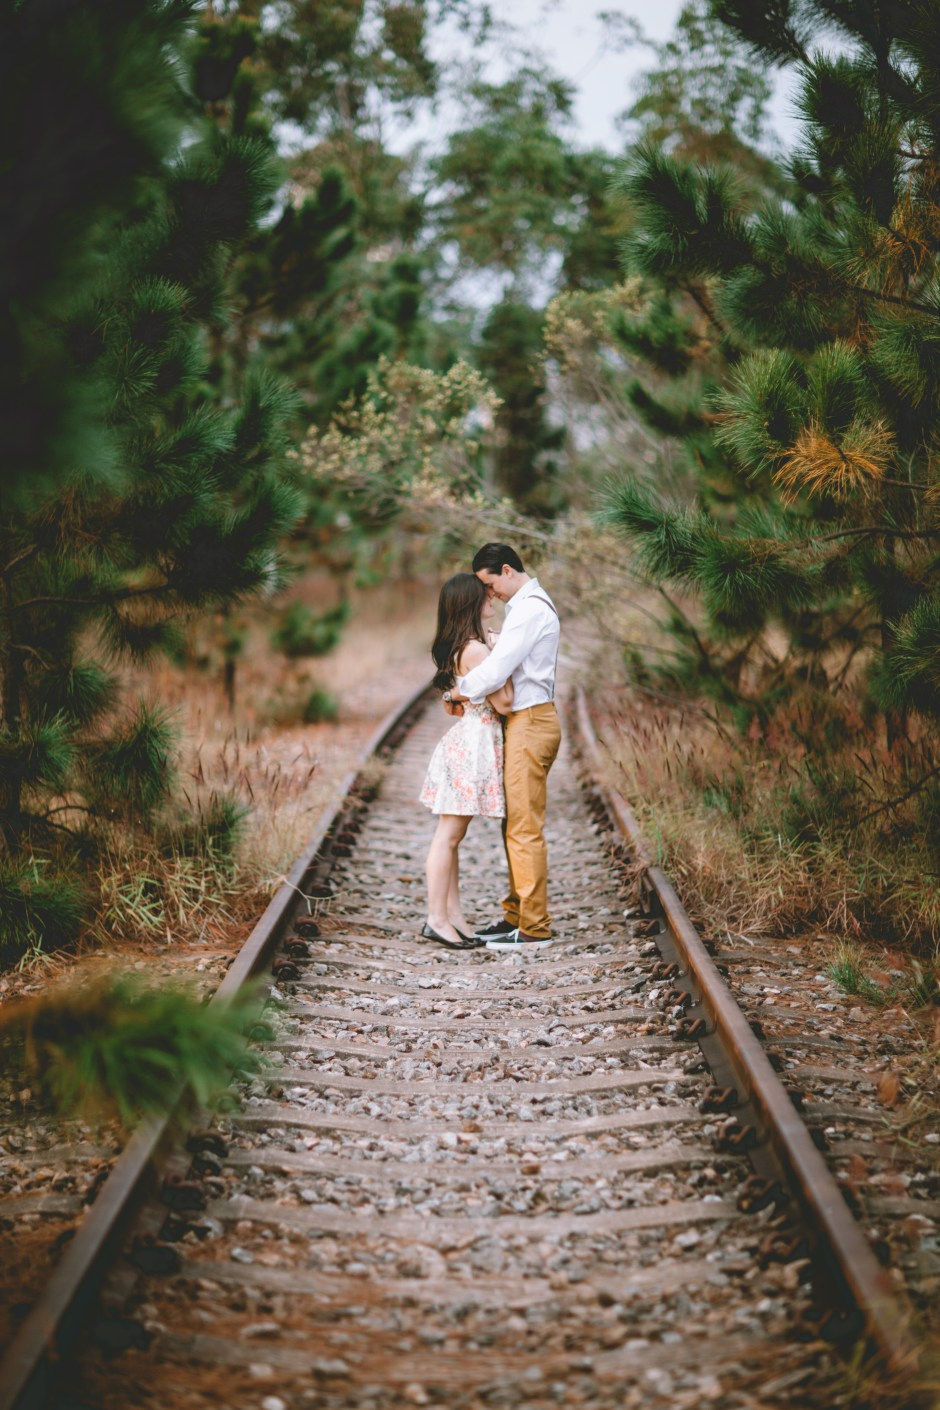 Girl Couple Wallpaper Couple On Railroad 183 Free Stock Photo